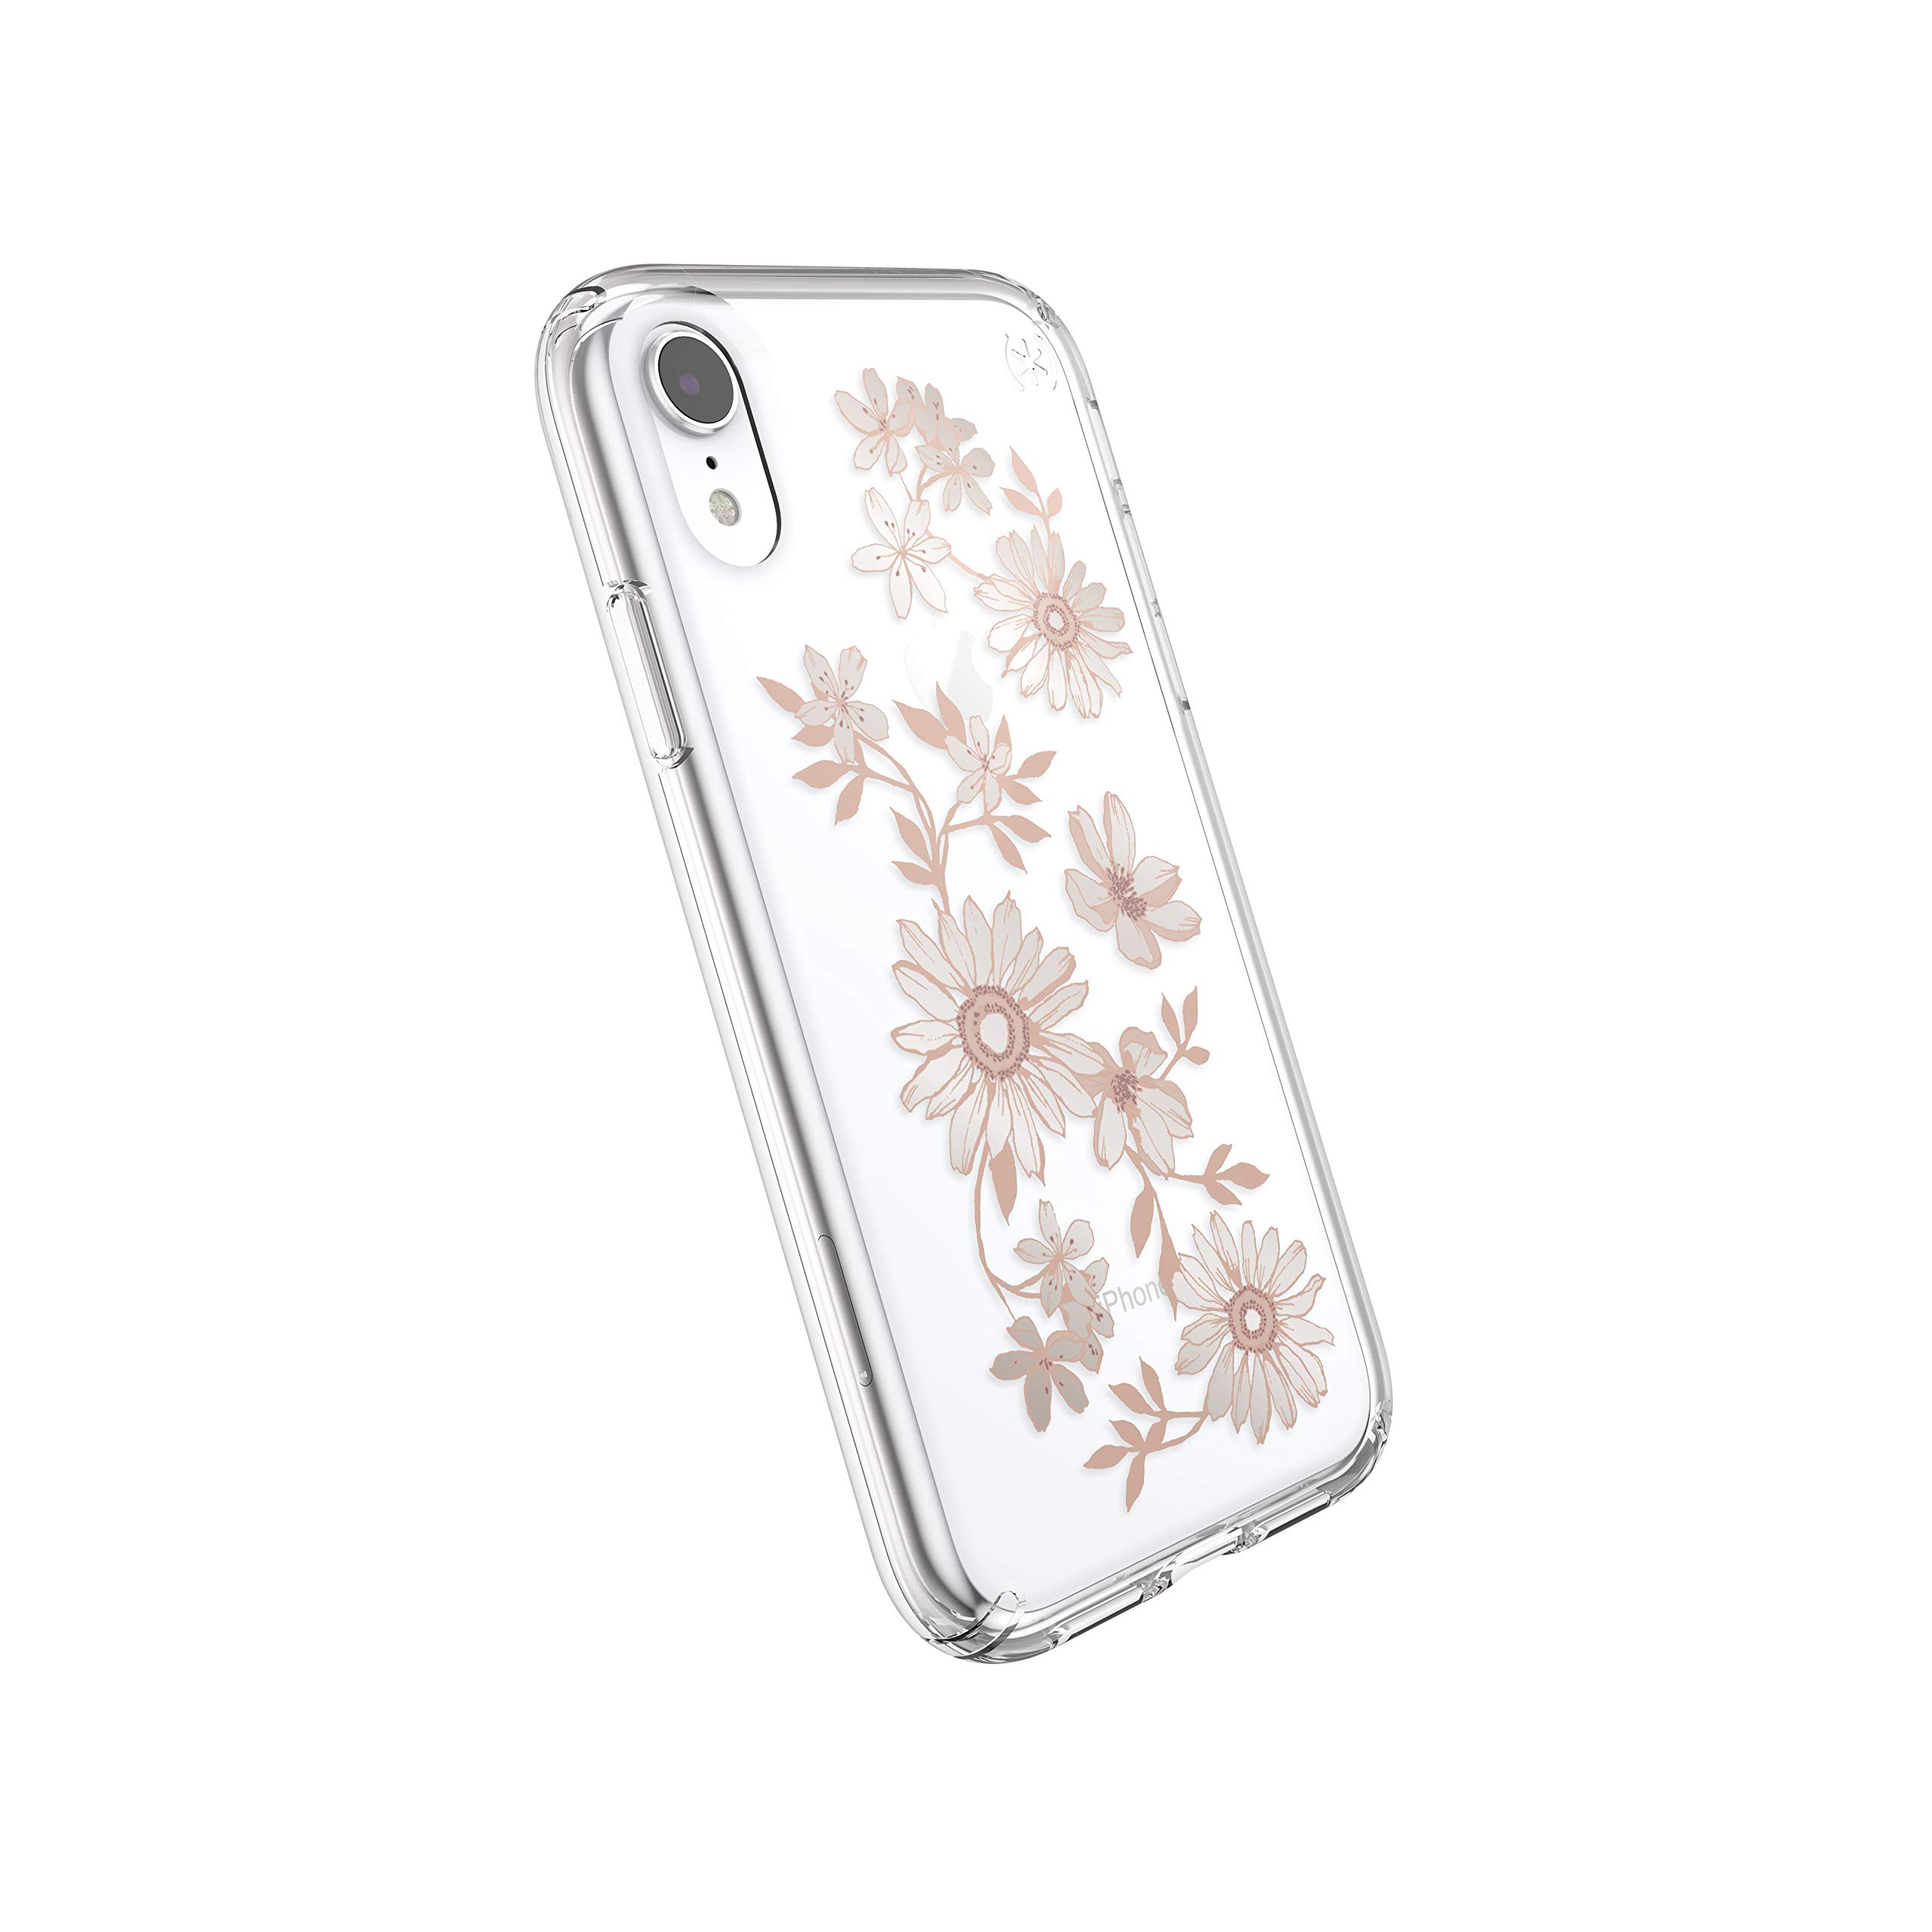 Speck Products Presidio Clear + Print iPhone XR Case, FairytaleFloral Peach Gold/Clear